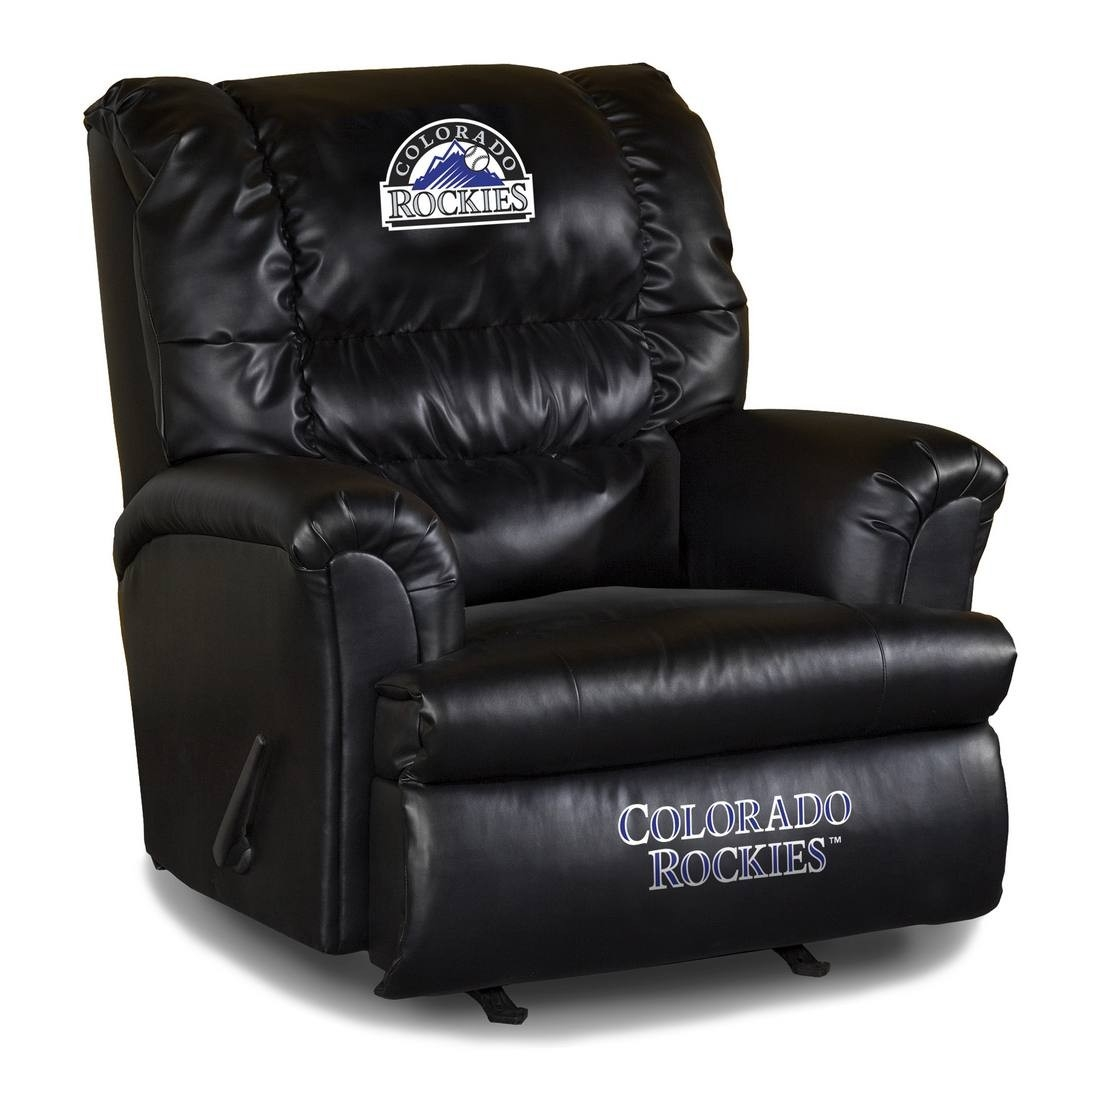 Colorado  Leather Big Daddy Recliner - 79-2023 - Toys Tables And Chairs 79-2023